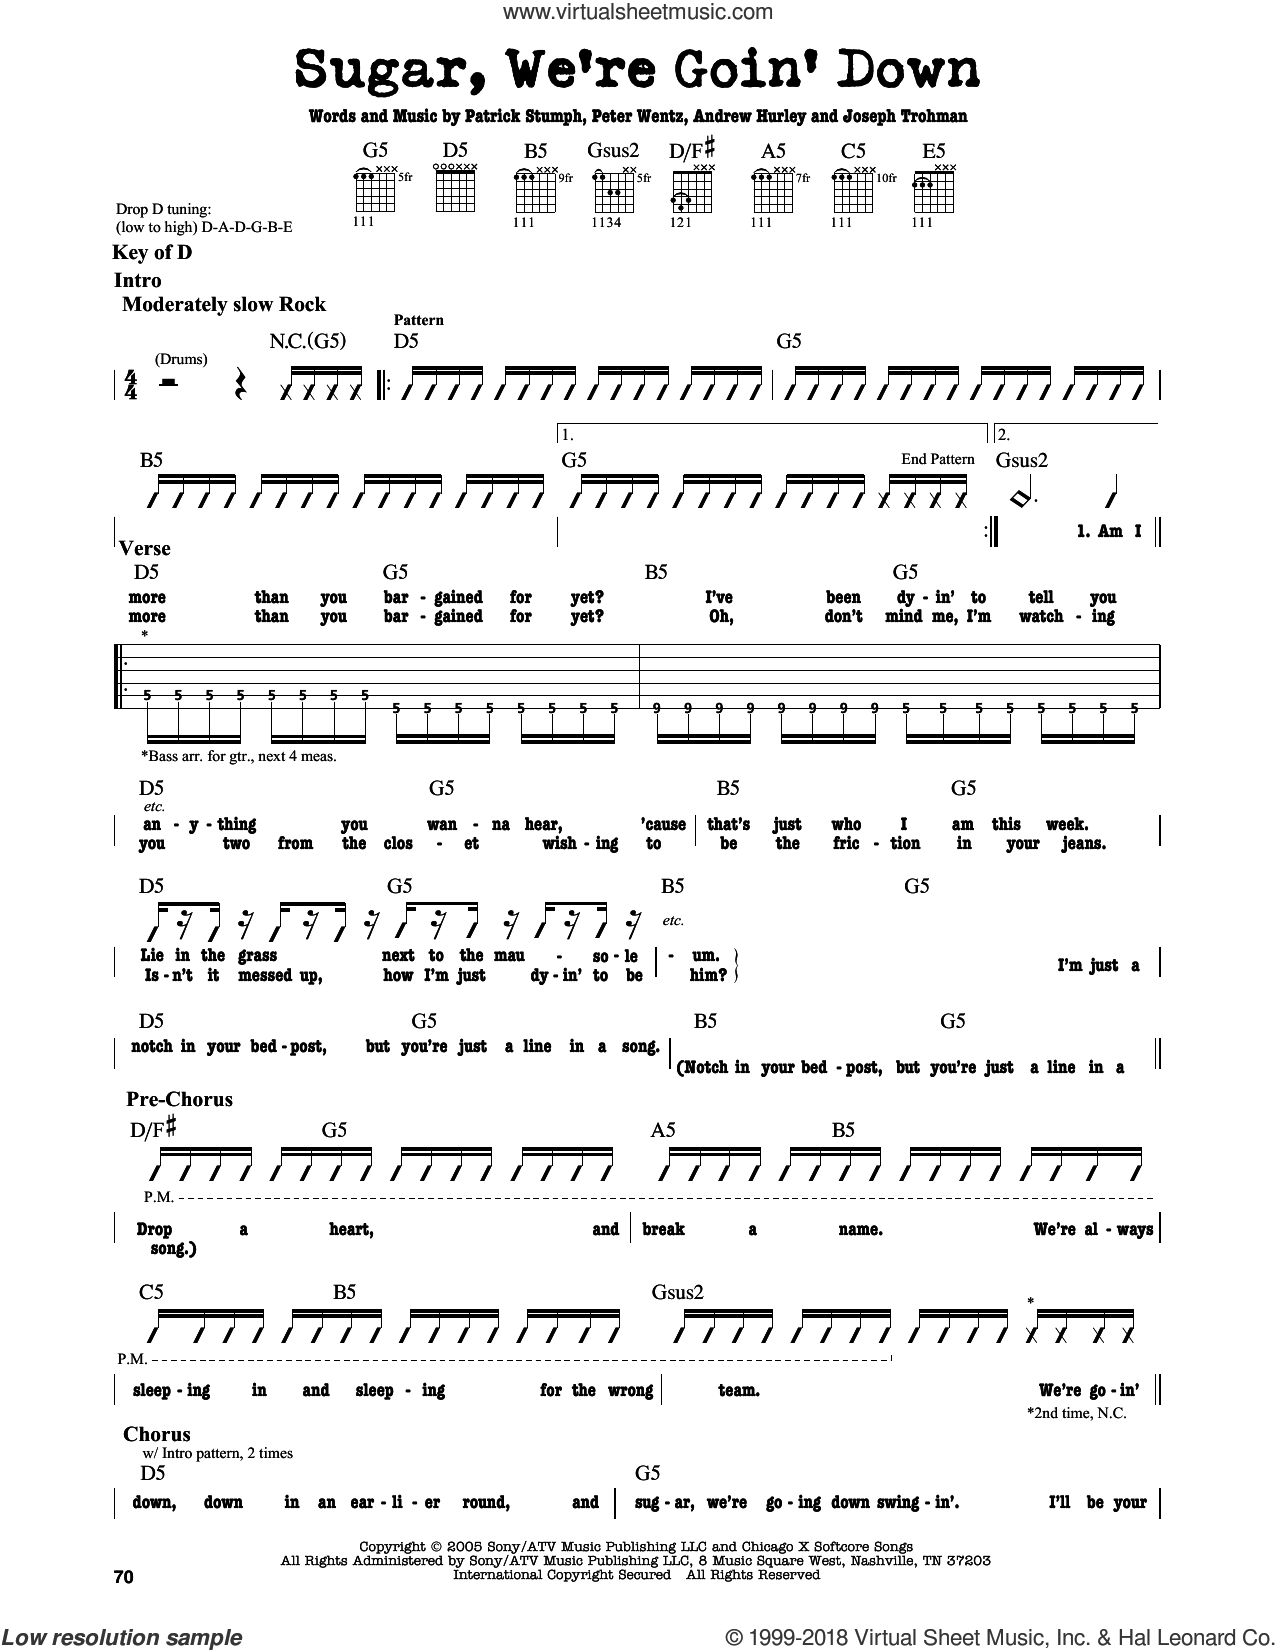 Sugar, We're Goin' Down sheet music for guitar solo (lead sheet) by Fall Out Boy, Andrew Hurley, Joseph Trohman, Patrick Stumph and Peter Wentz, intermediate guitar (lead sheet)